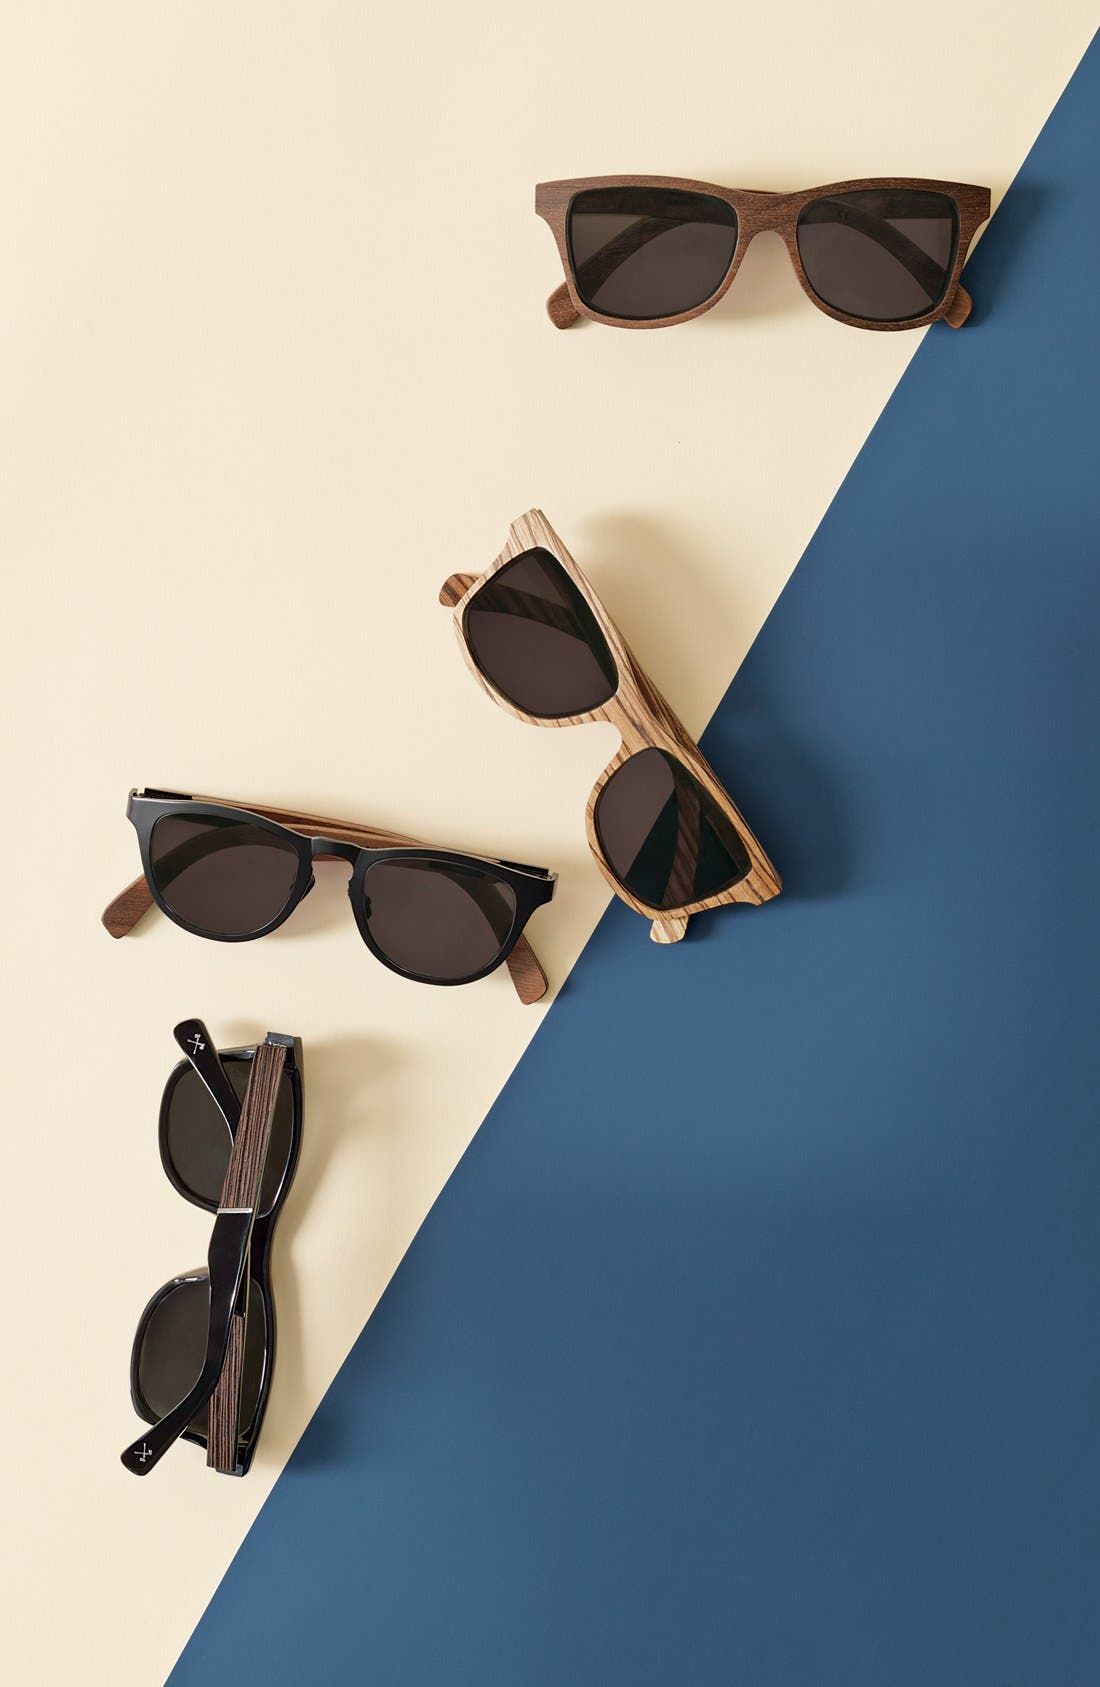 'Canby' 53mm Wood Sunglasses,                             Alternate thumbnail 2, color,